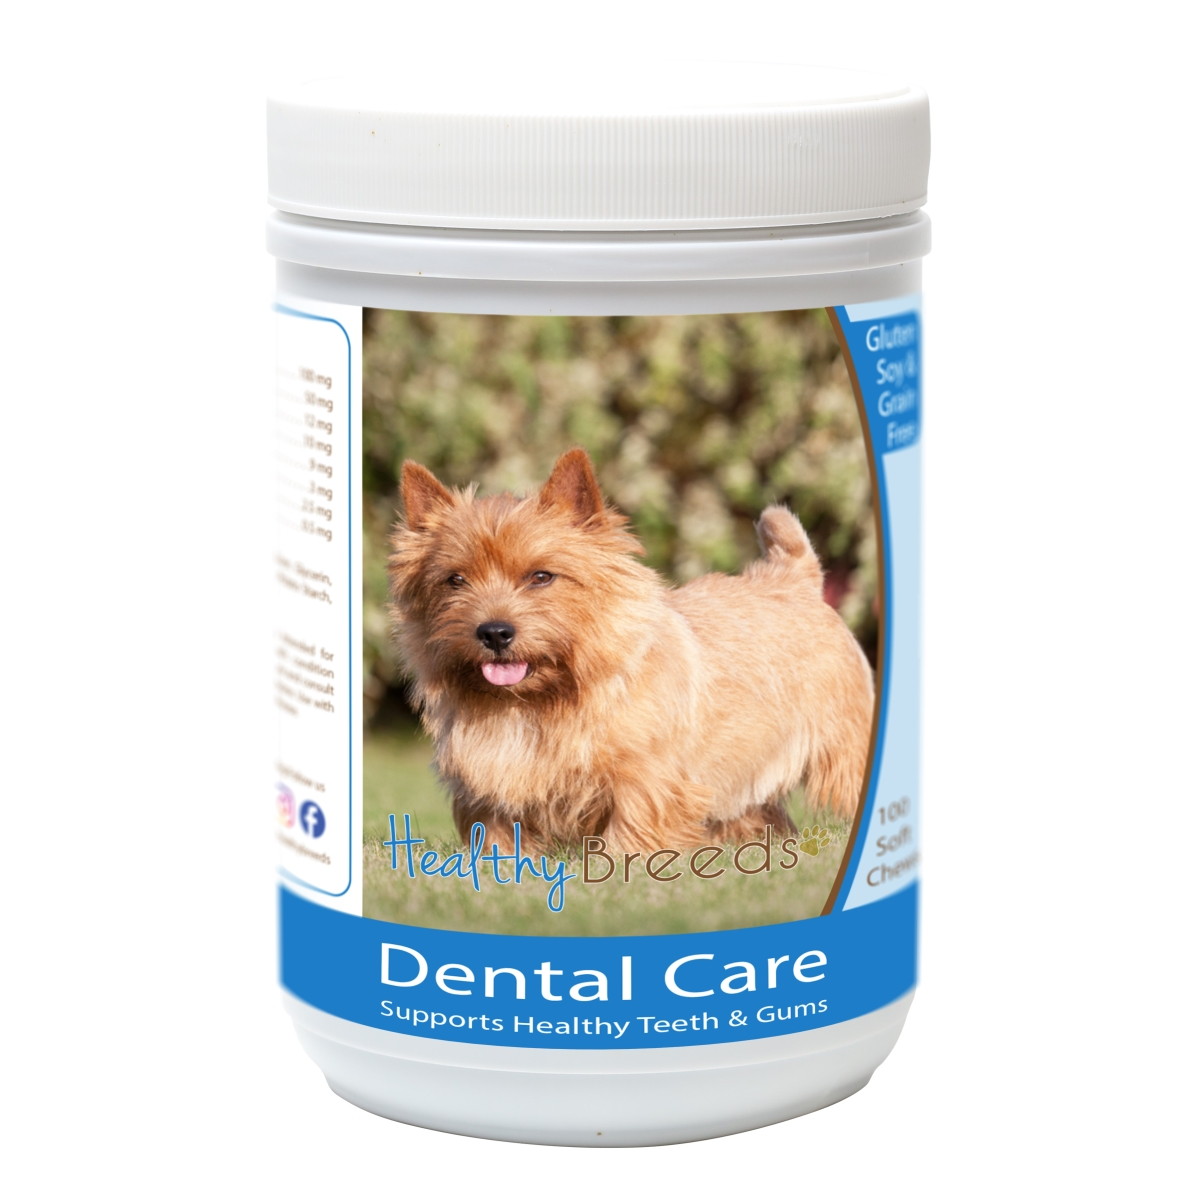 Healthy Breeds 840235163473 Norwich Terrier Breath Care Soft Chews for Dogs - 60 Count